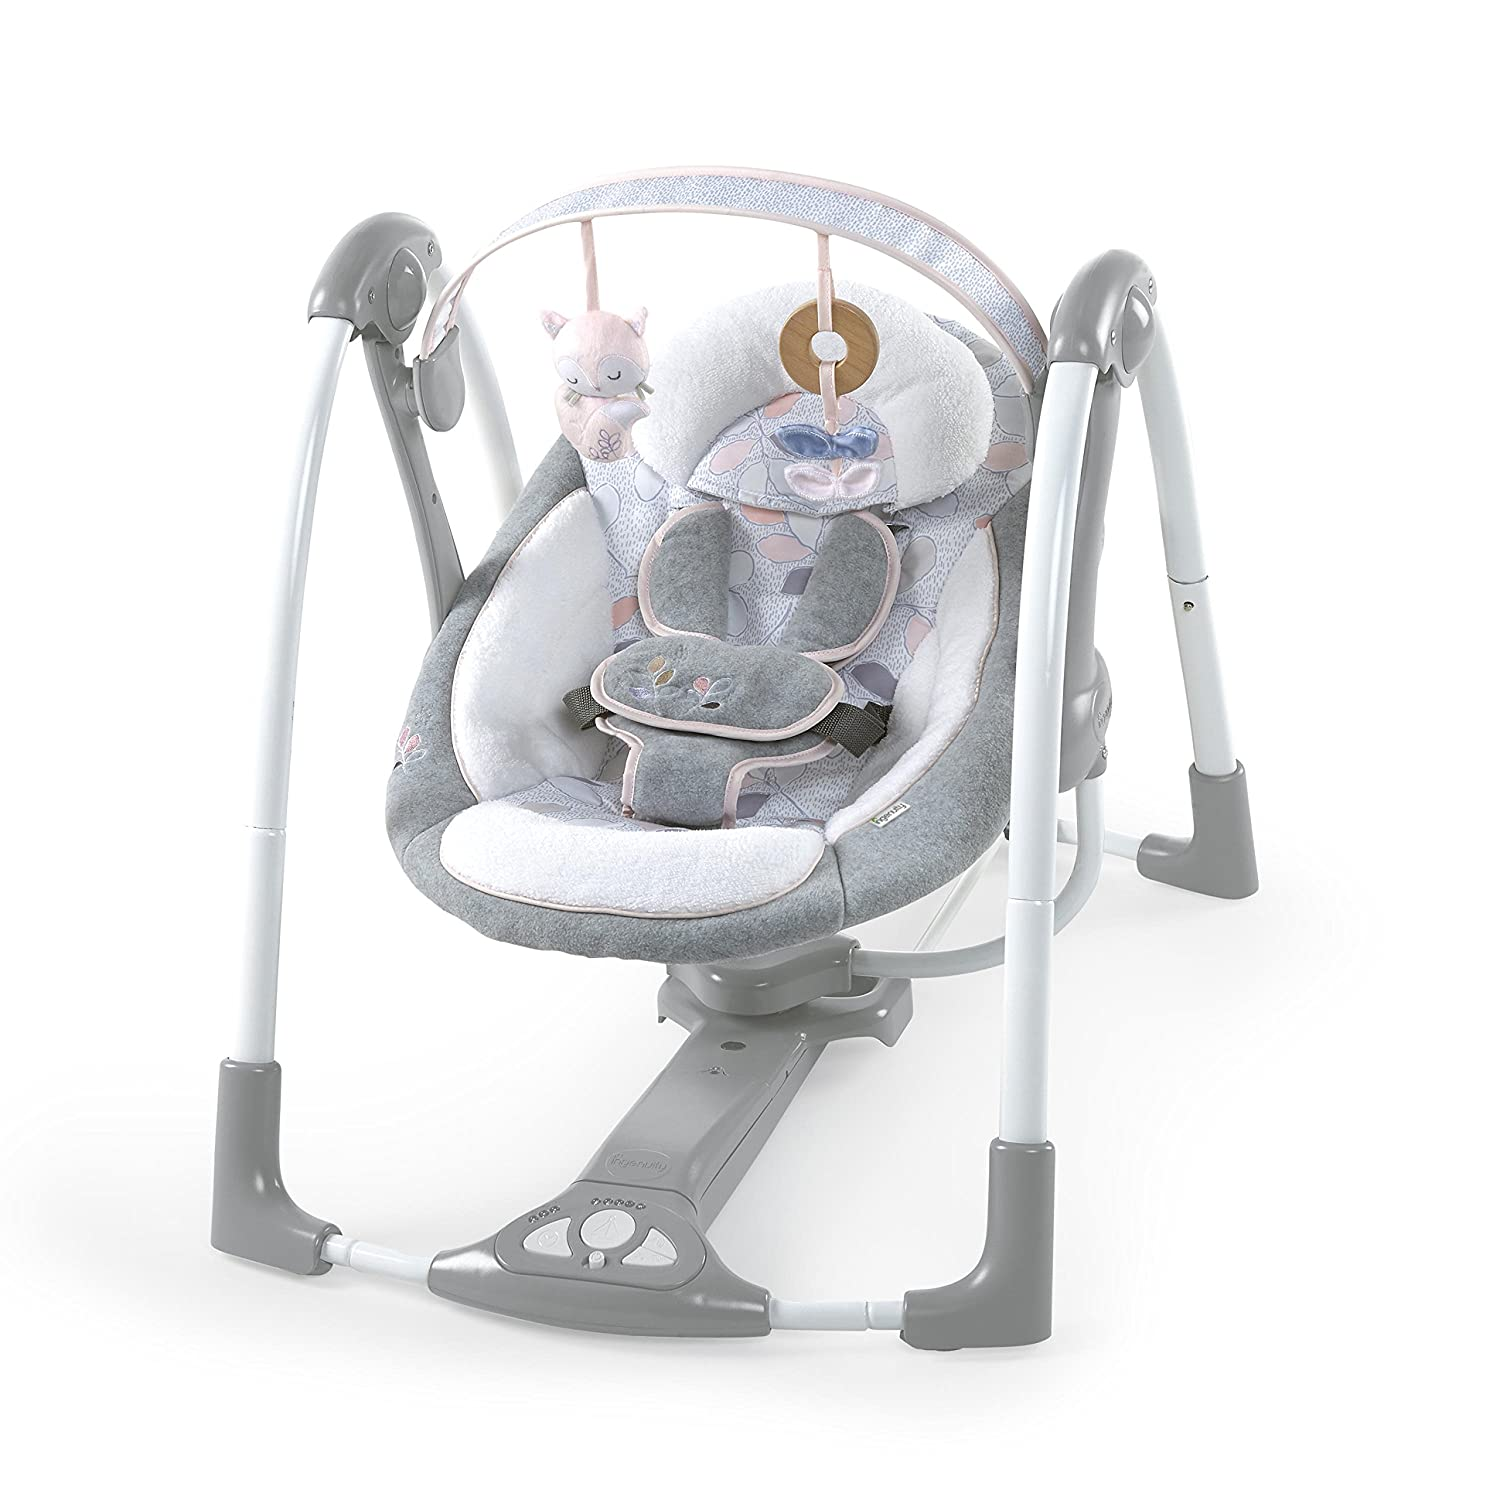 Ingenuity, Baby Schauzel Tragbar Swing and Go - Boutique Collection - Arabella Kids II Europe B.V. 10287-2